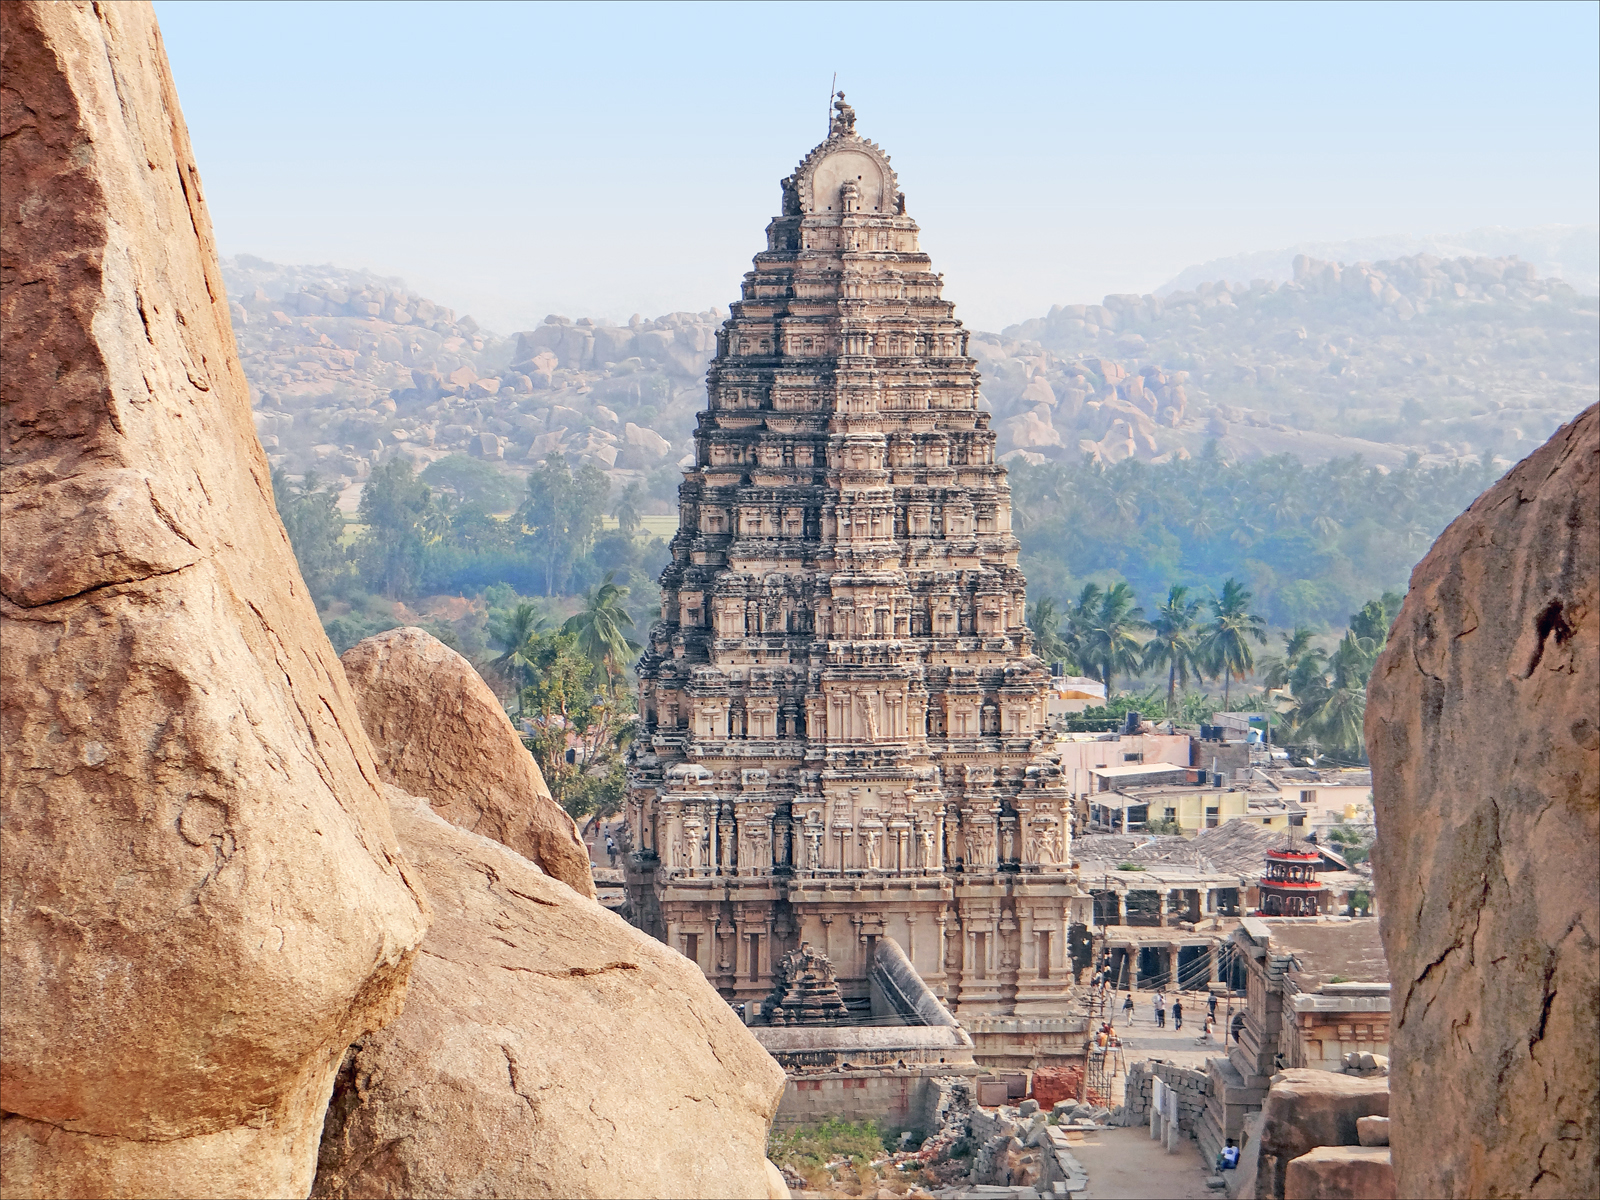 1_Virupaksha_temple_Gopuram_Hampi_Vijayanagar_India.jpg